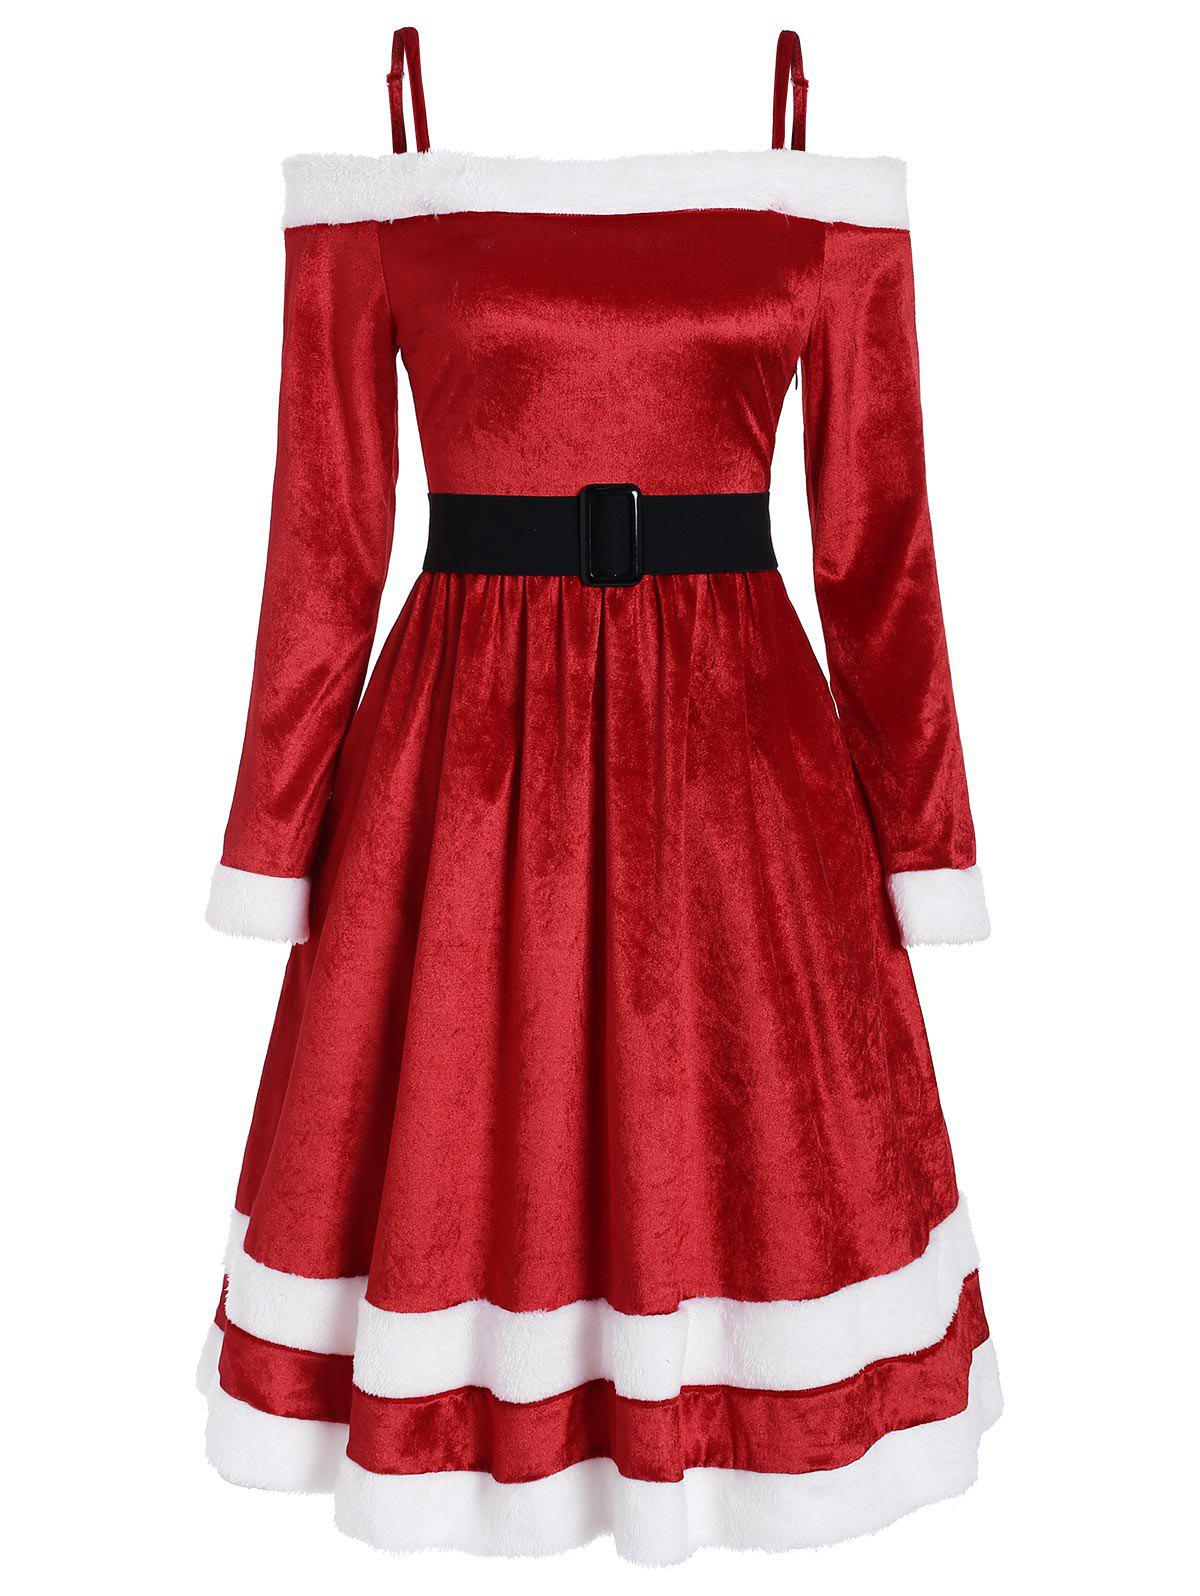 Fur Trim Belt Embellished Velvet Christmas Dress - CHERRY RED L